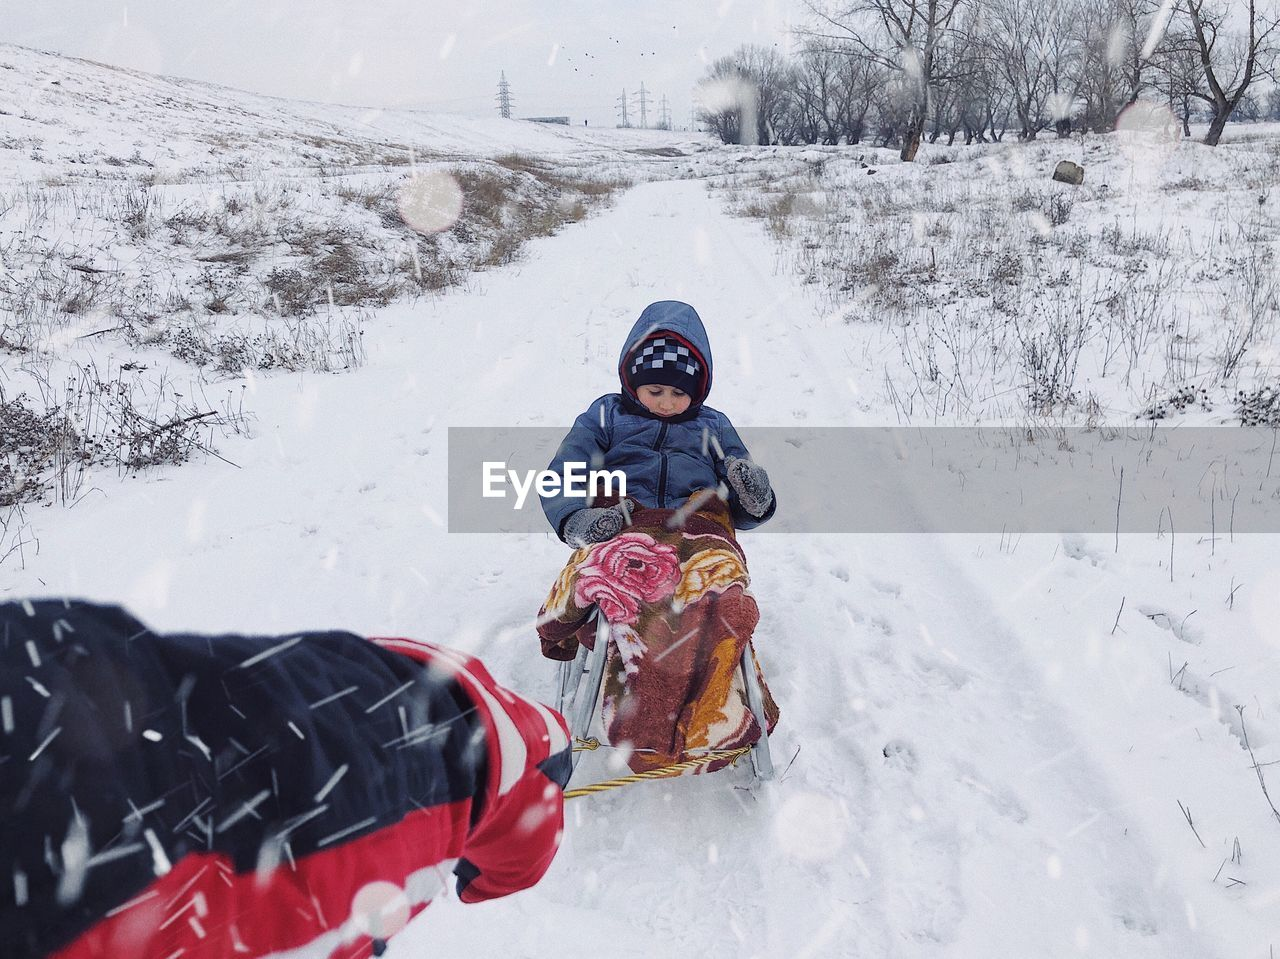 Boy sitting on sled during winter